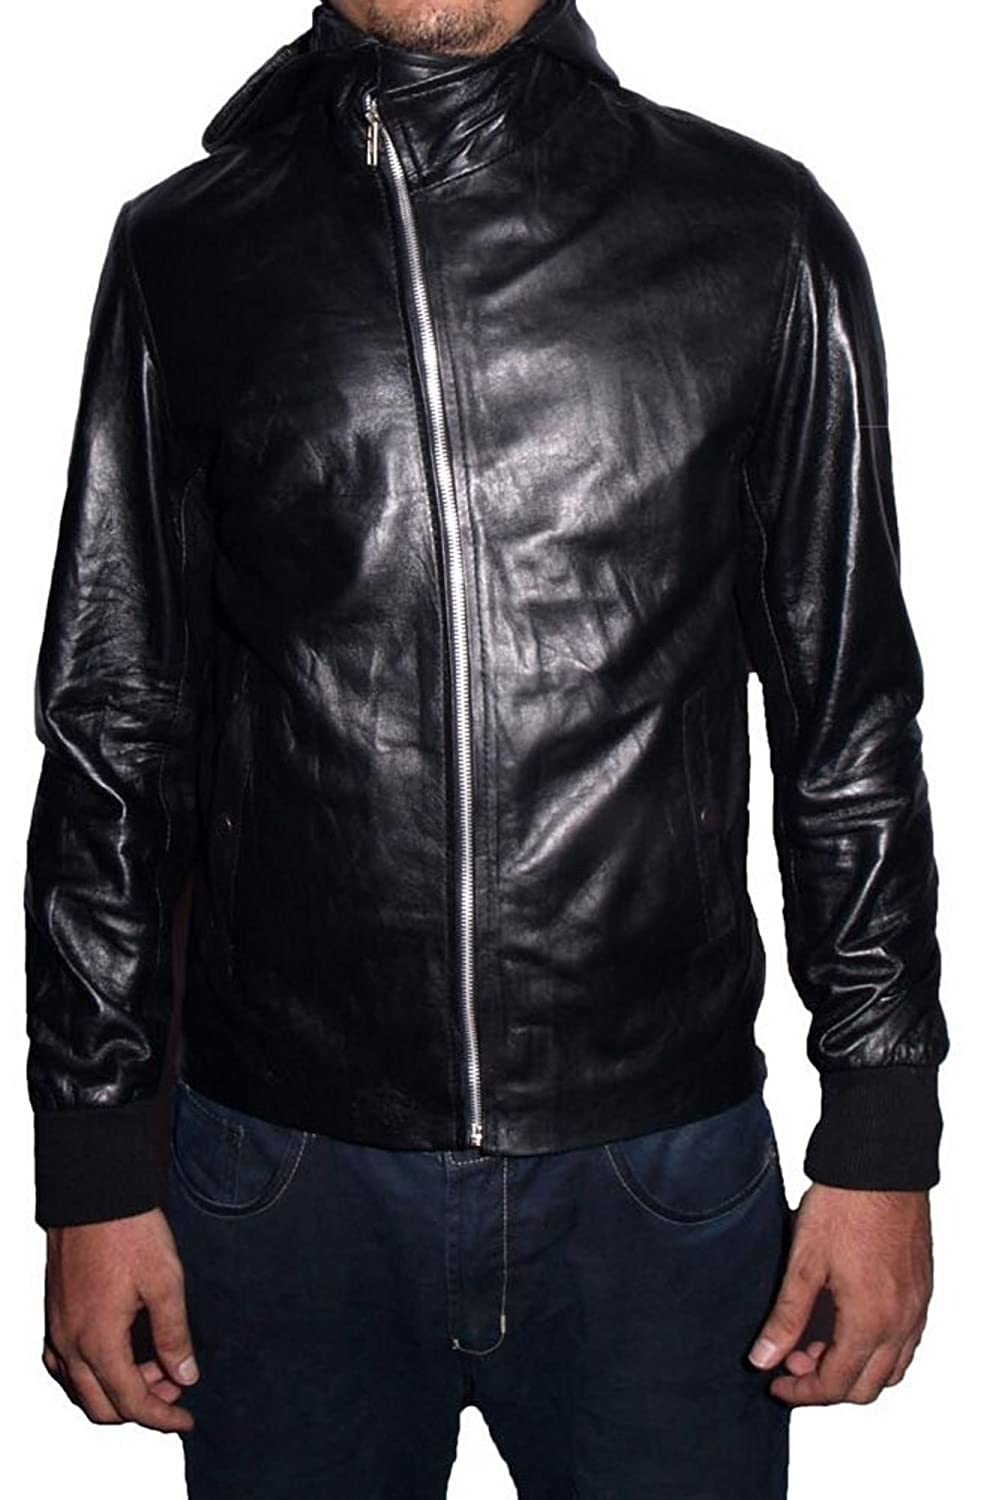 HLS Men's Rick Hoody Black Sheep Leather Jacket